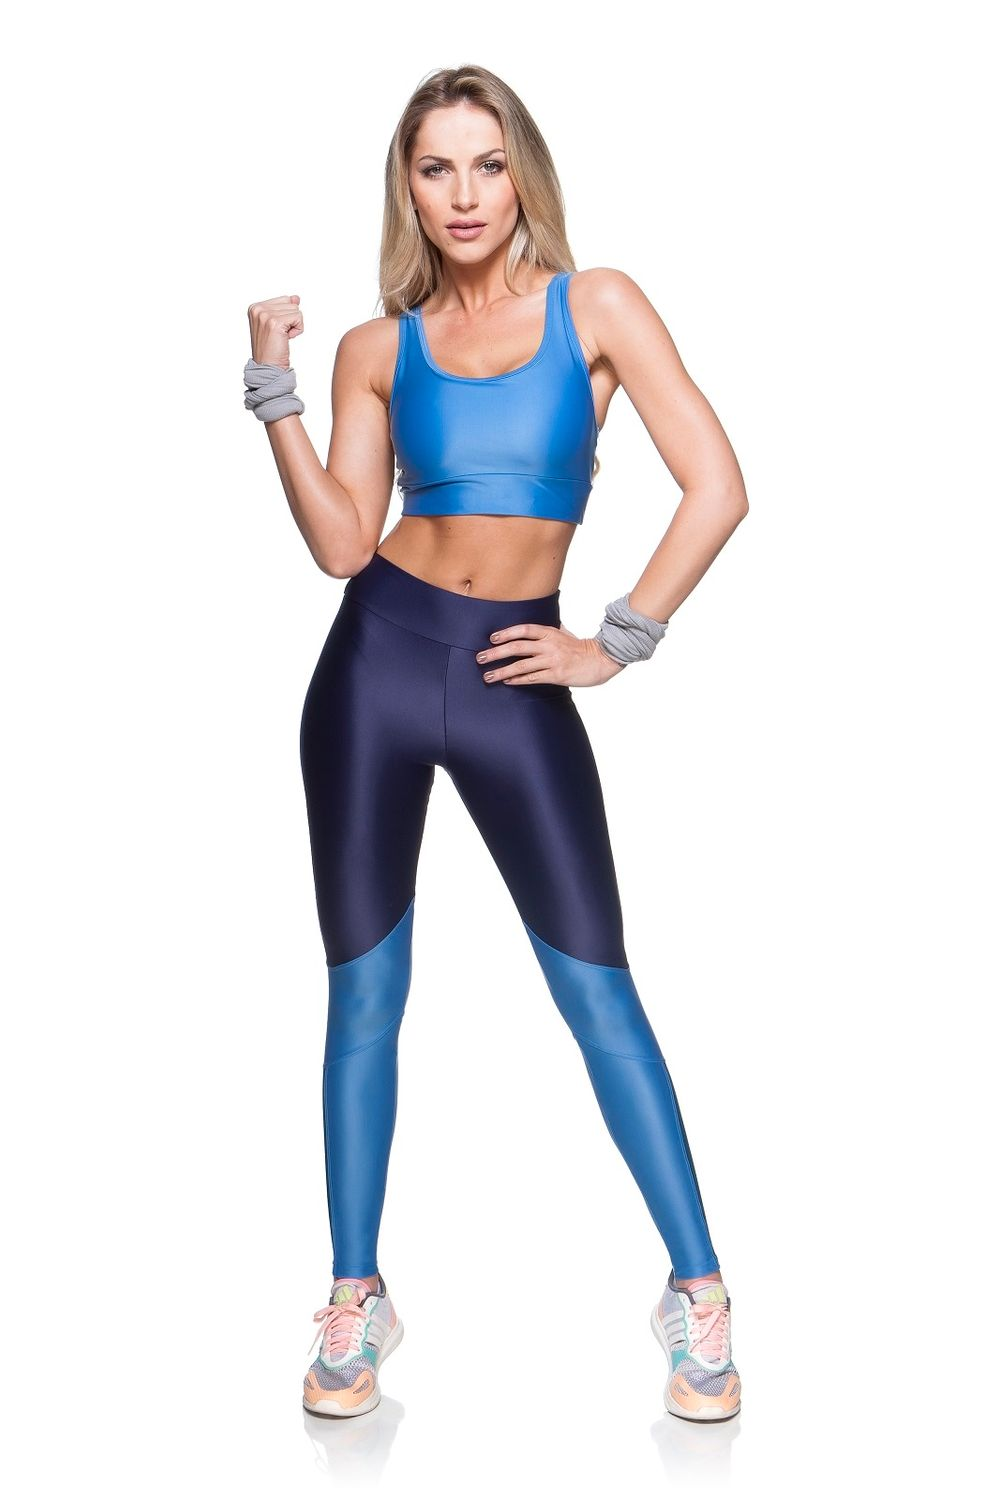 top-fitness-ju-new-azul-5-